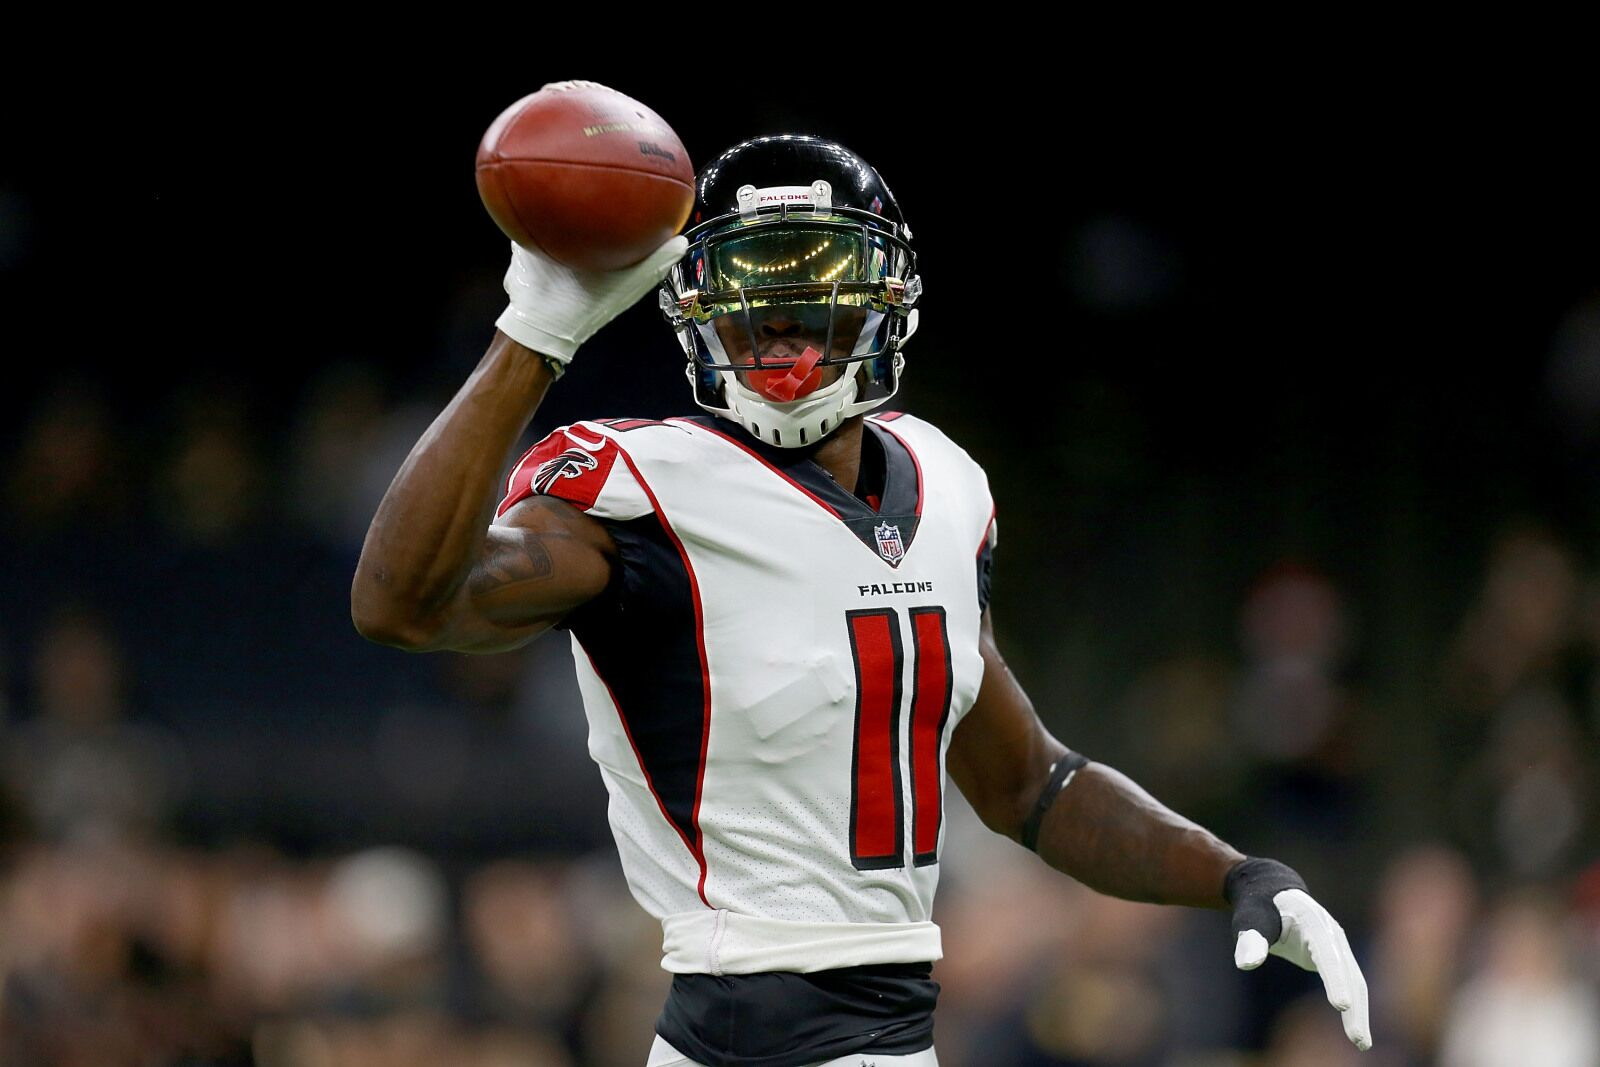 Falcons Fans Have One Big Reason To Worry About Julio Jones